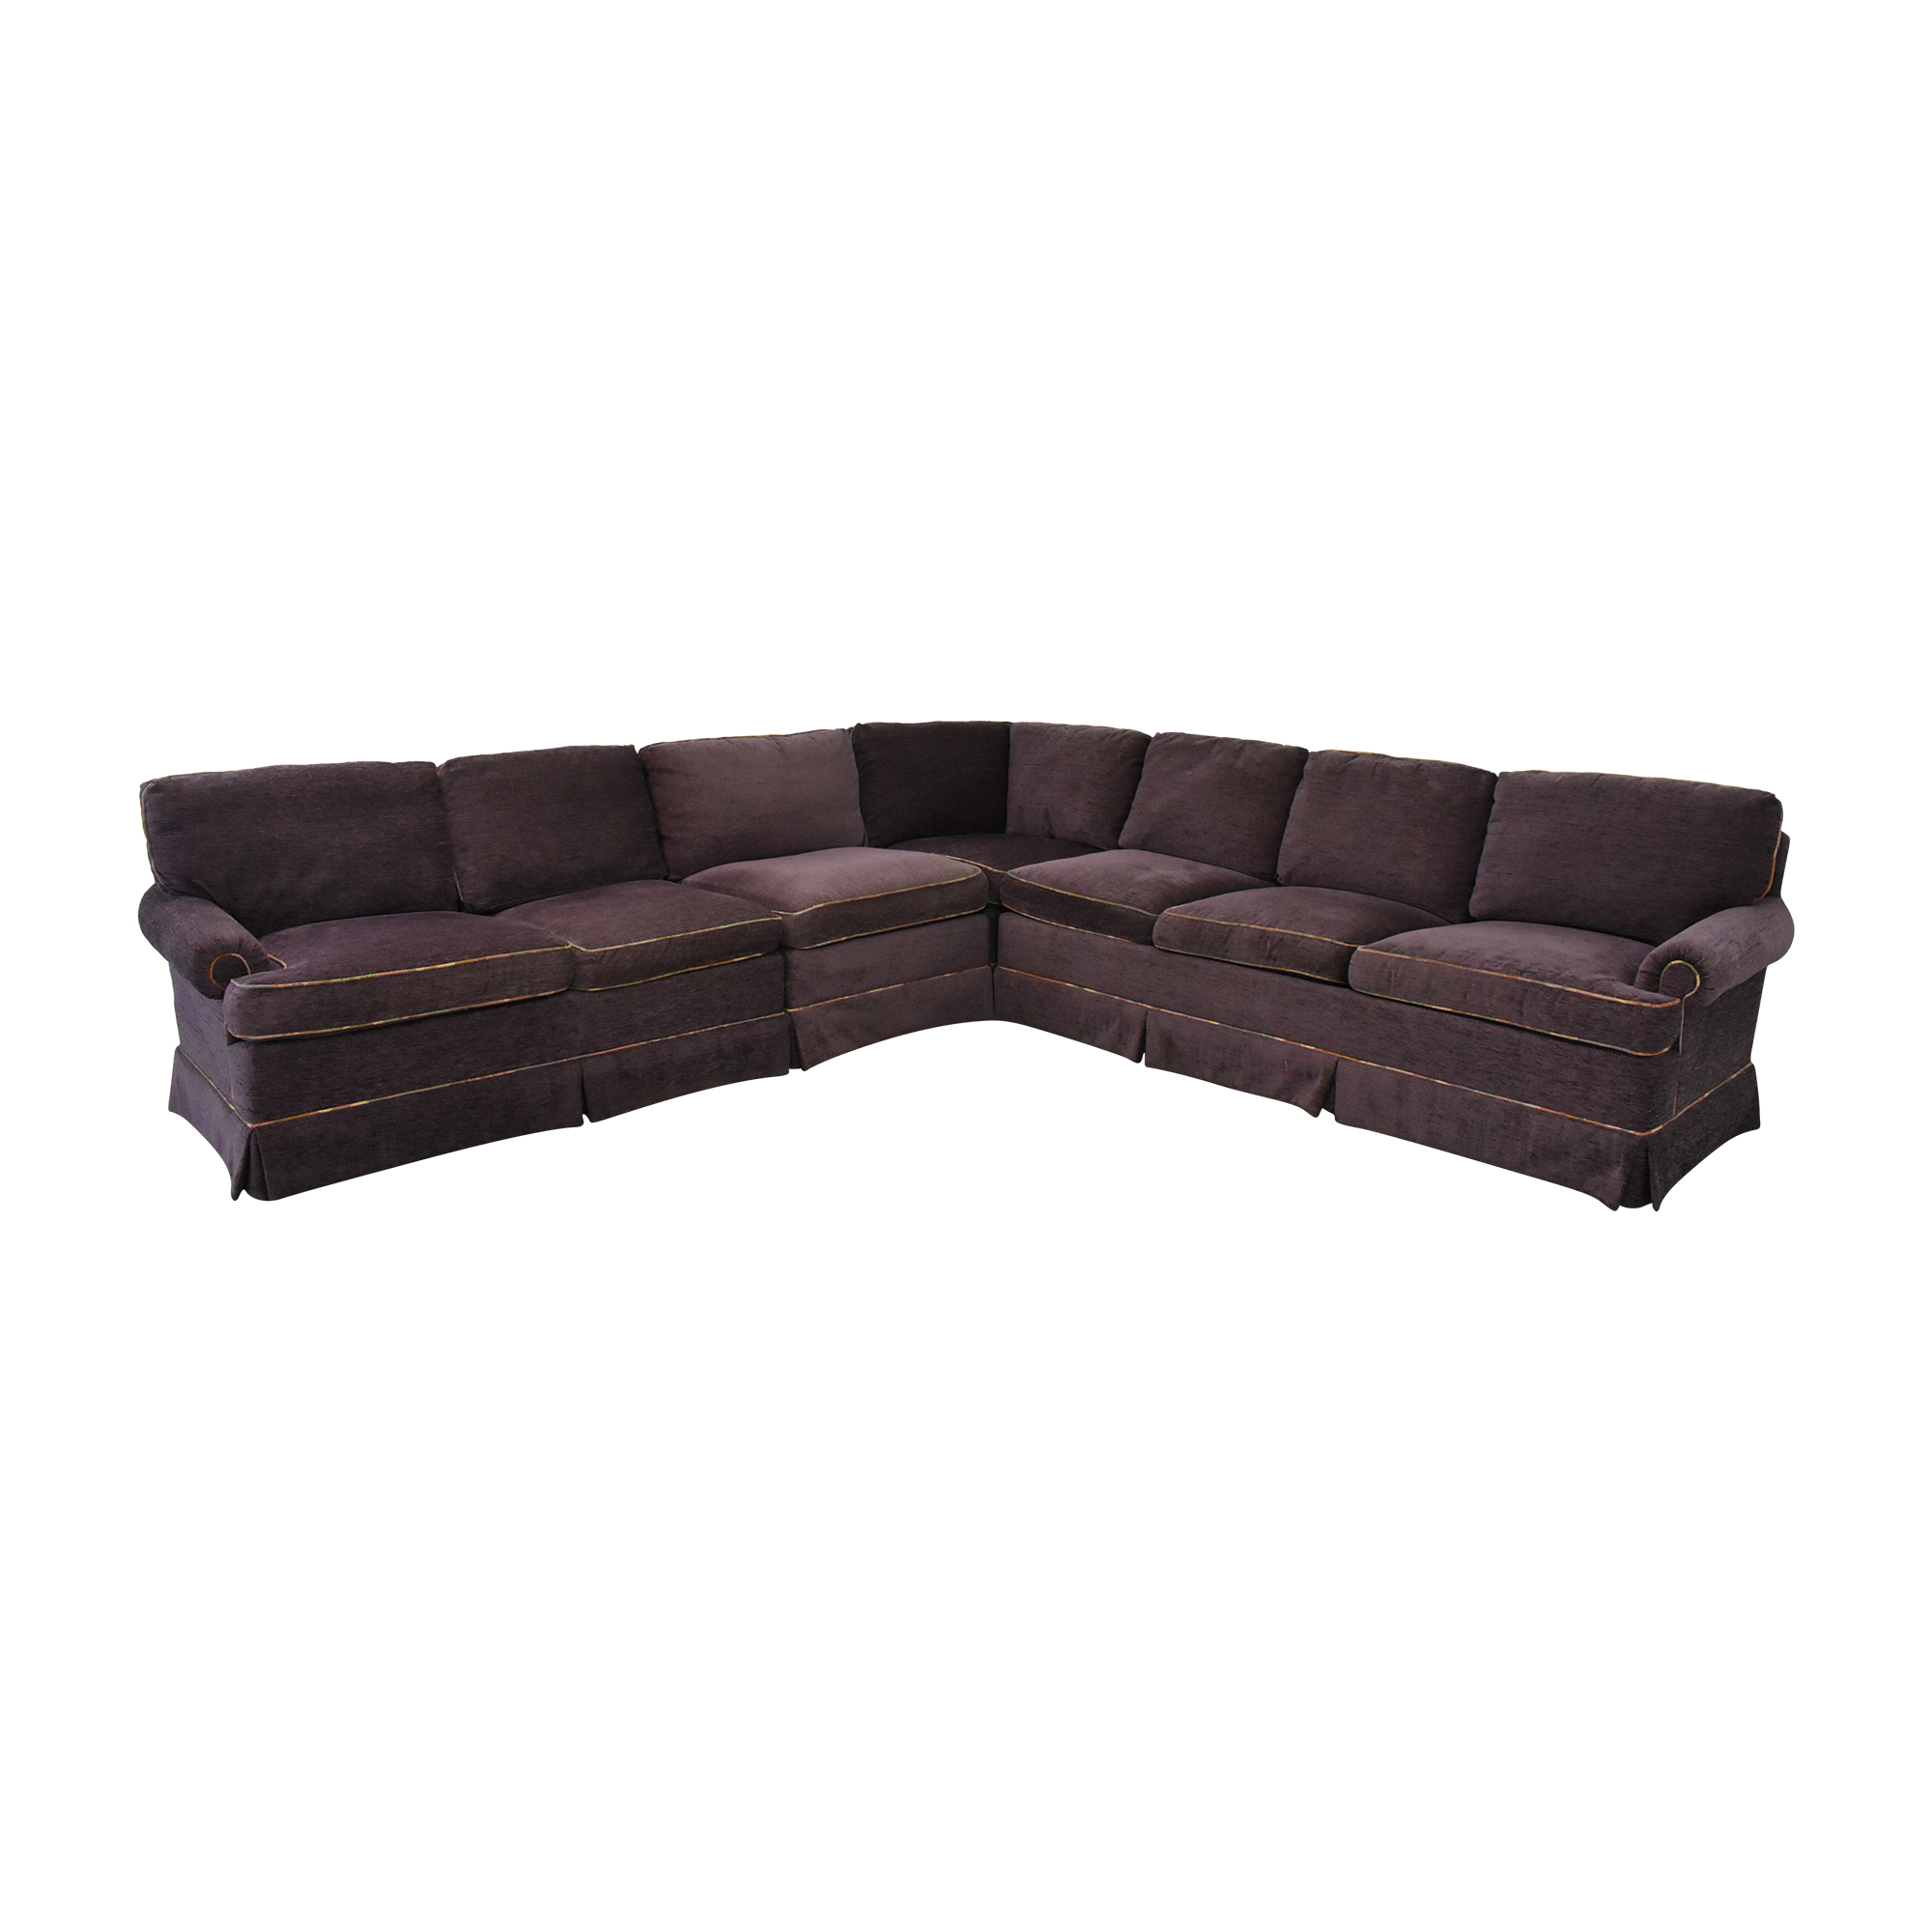 Charles Stewart Company Charles Stewart Company L Shaped Sectional Sofa Sofas